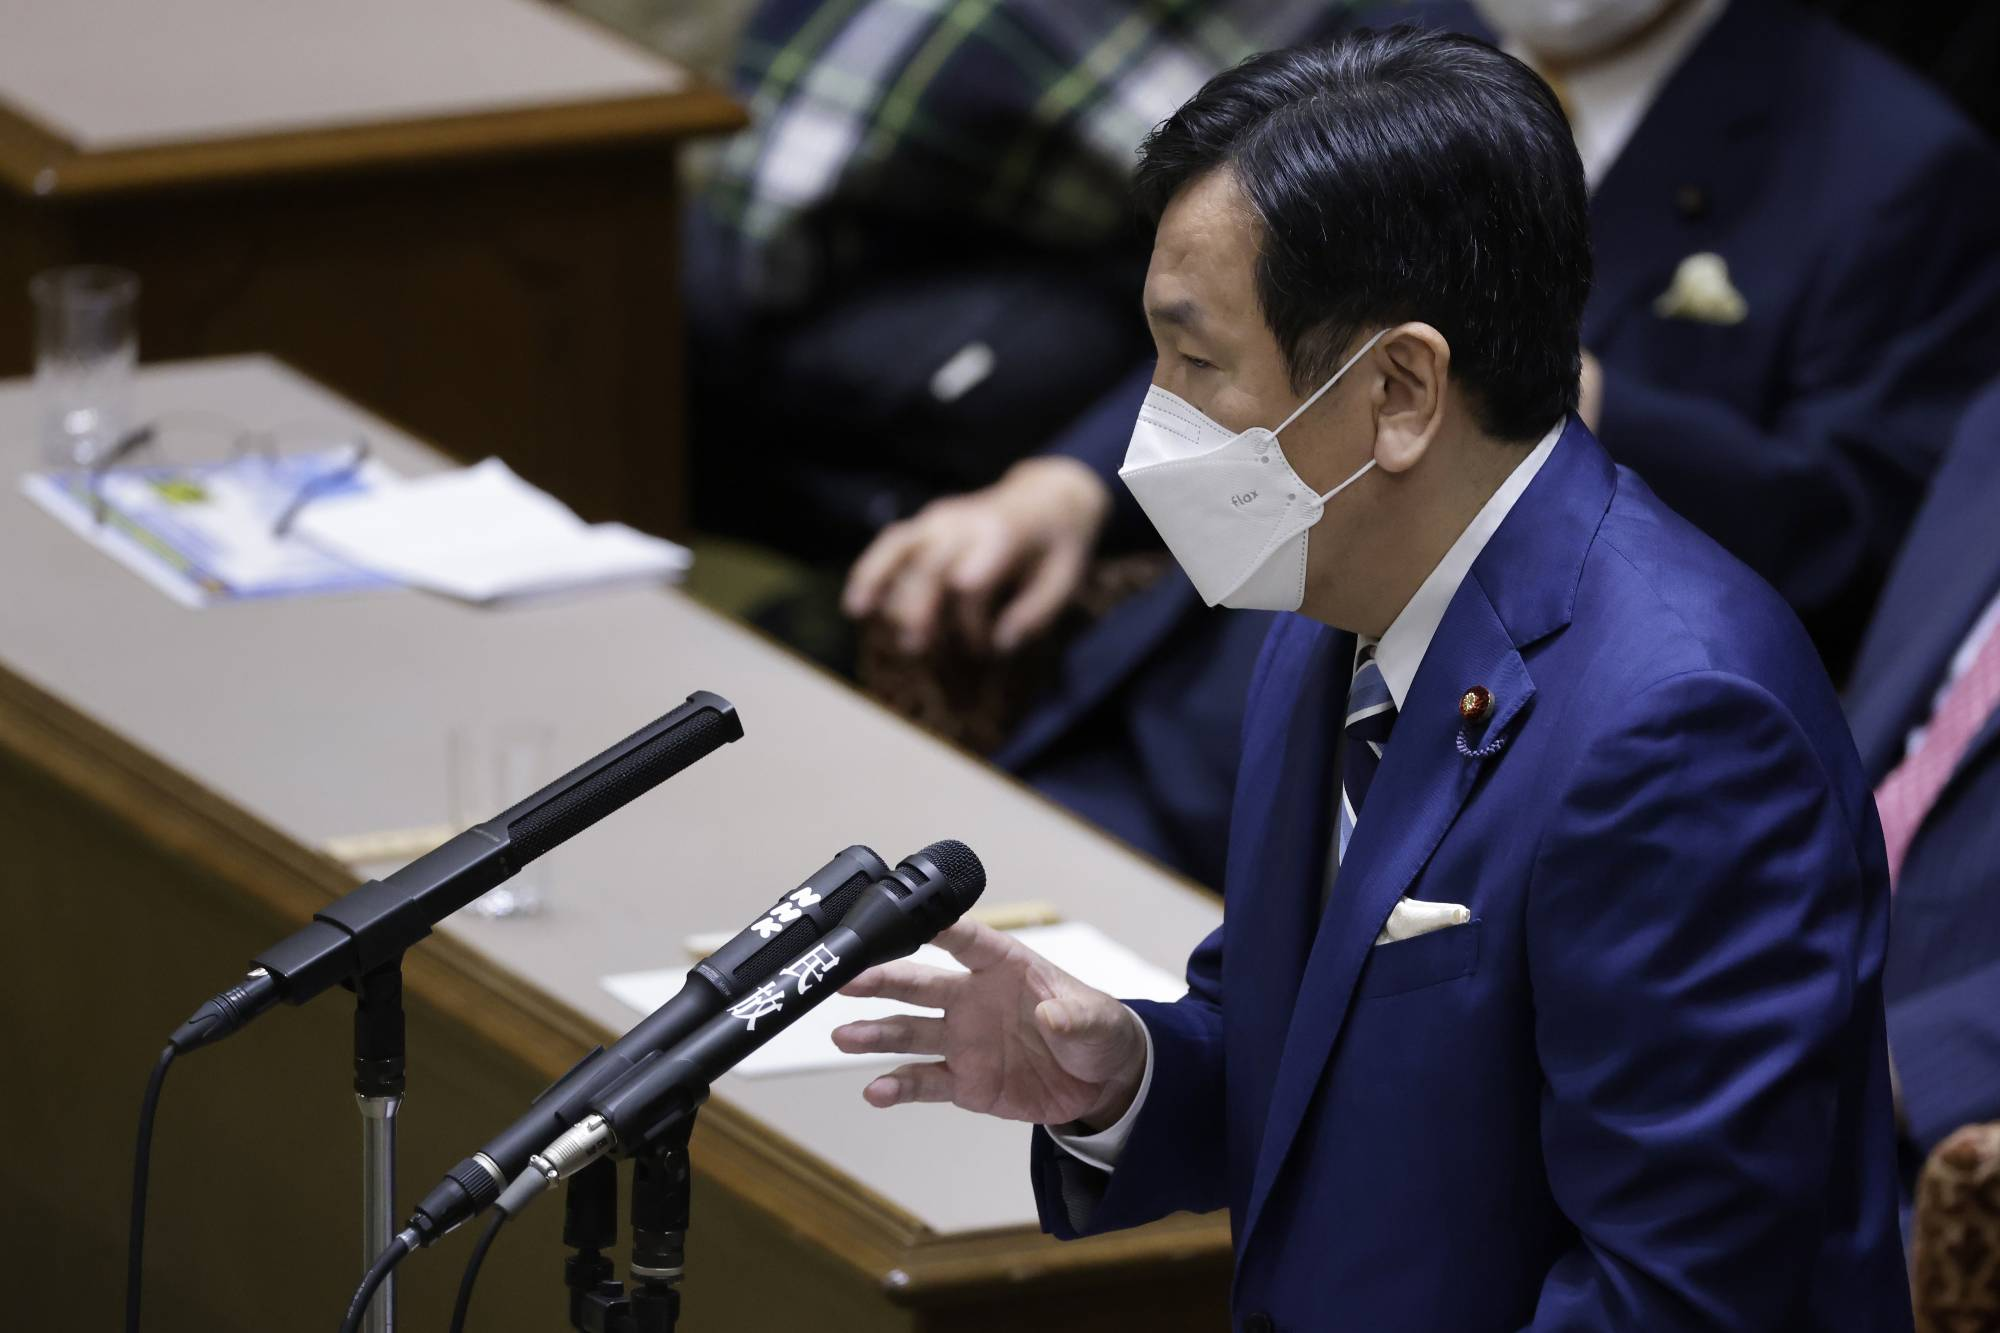 Yukio Edano, head of the Constitutional Democratic Party of Japan, speaks during a party leaders debate at the Upper House on Wednesday.   BLOOMBERG